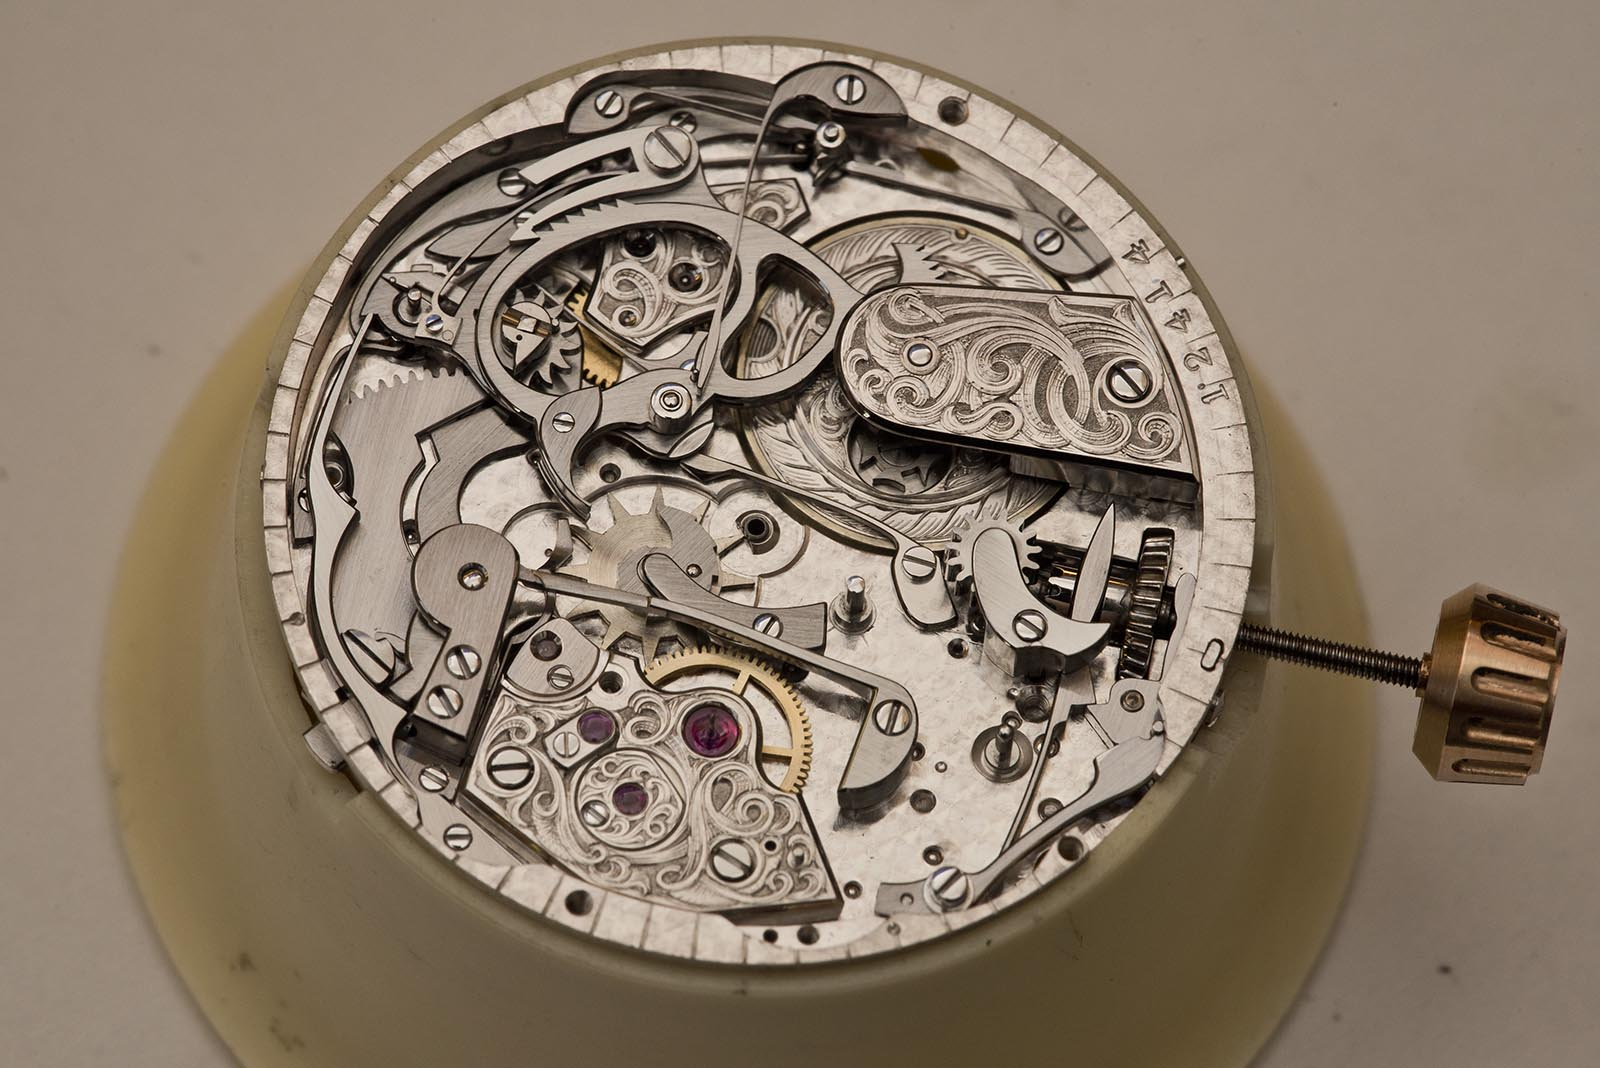 Molnar Fabry Nightingale Minute Repeater 5